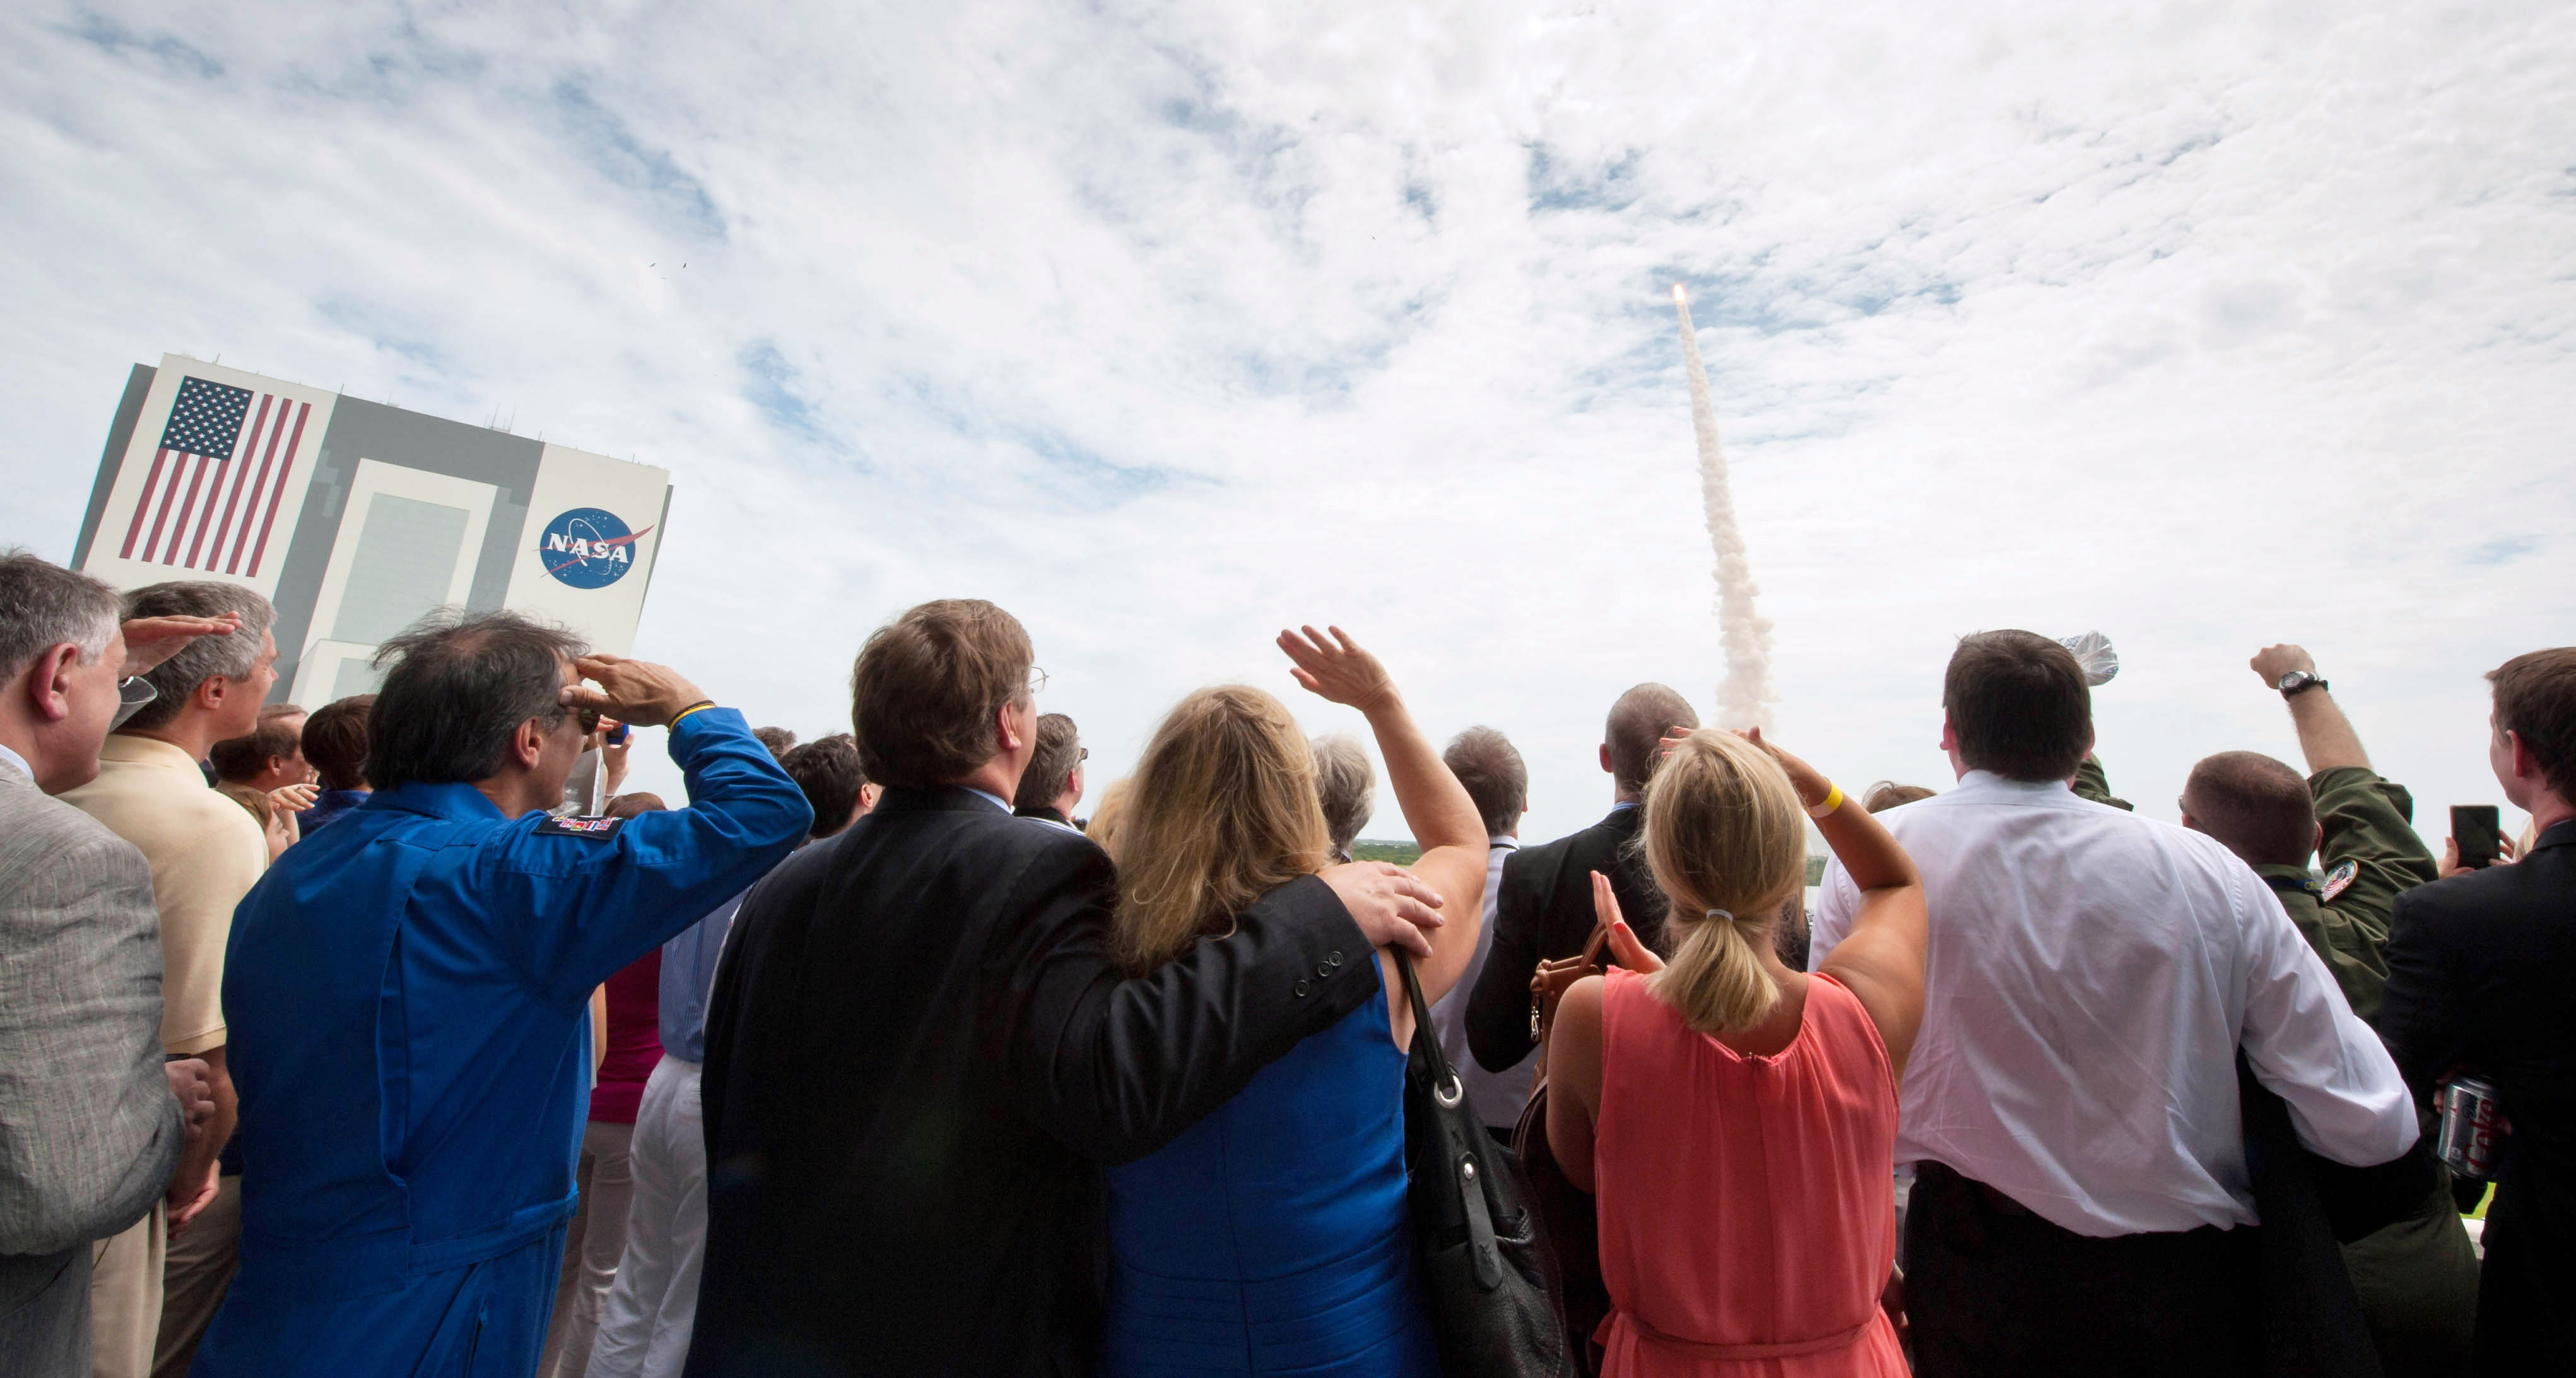 NASA's Final Space Shuttle Flight Lifts Off From Cape Canaveral